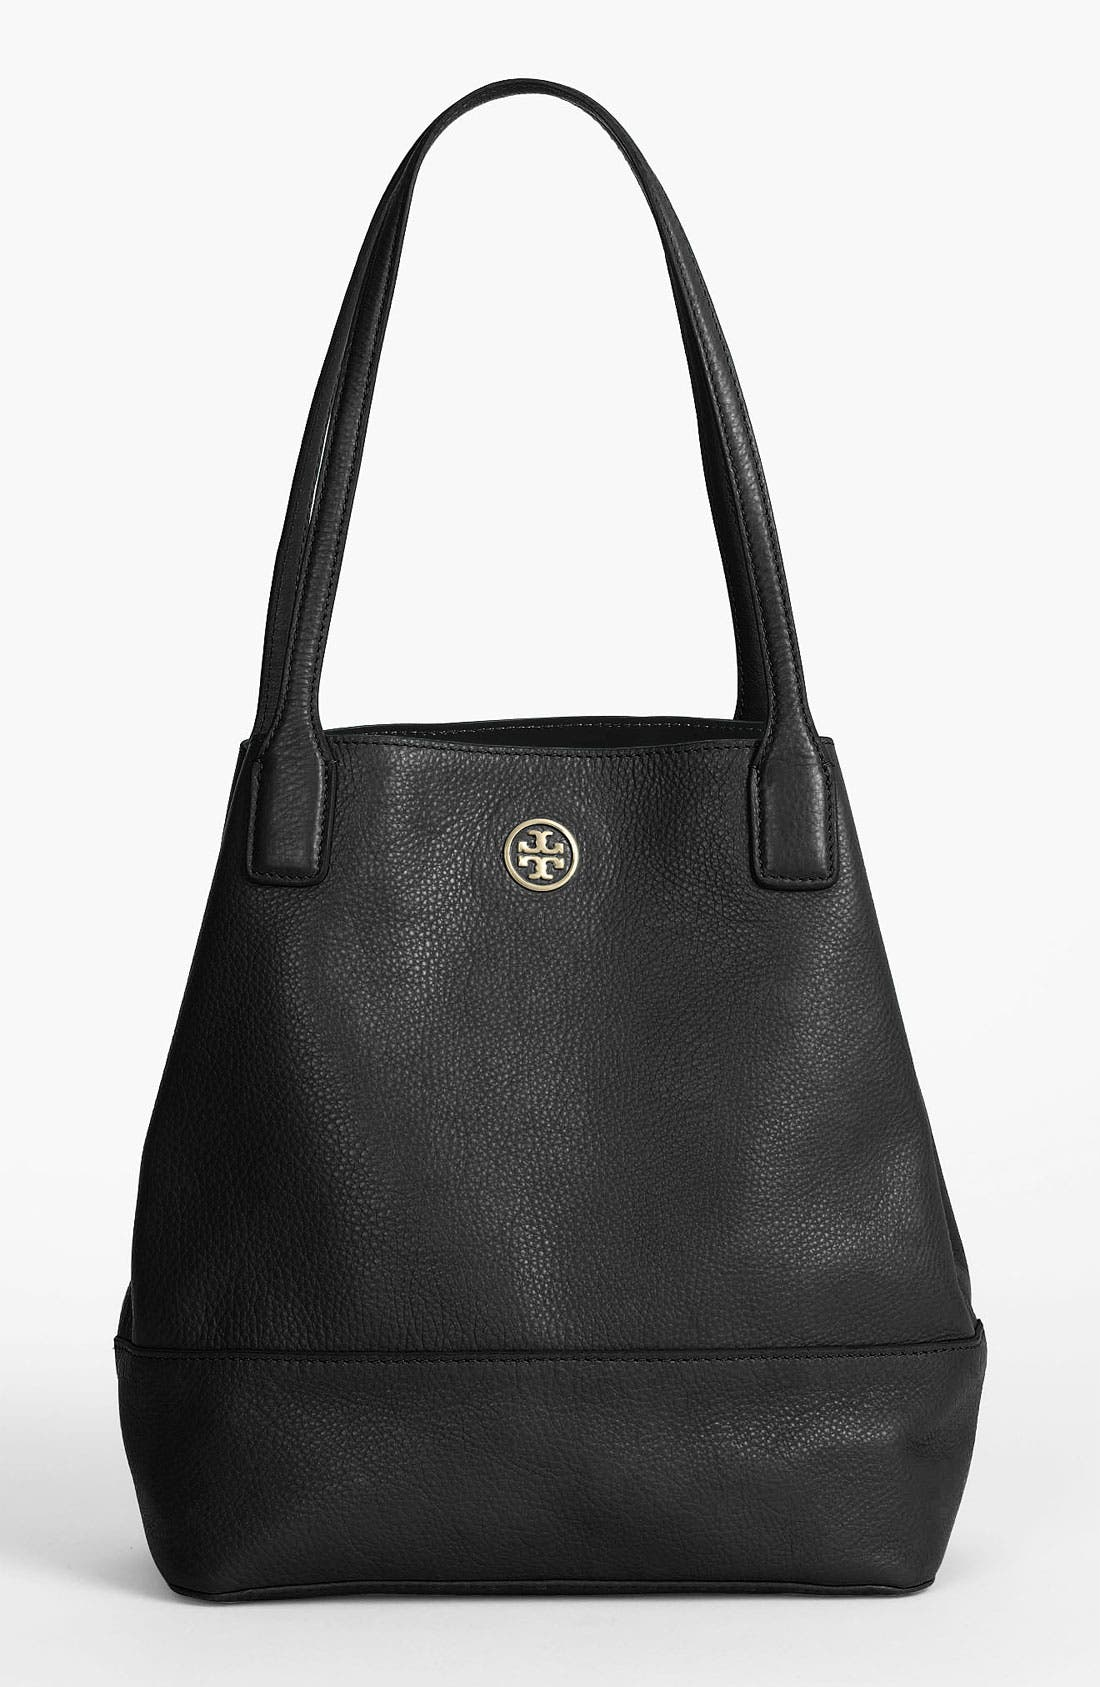 Main Image - Tory Burch 'Michelle Angelux - Small' Tote